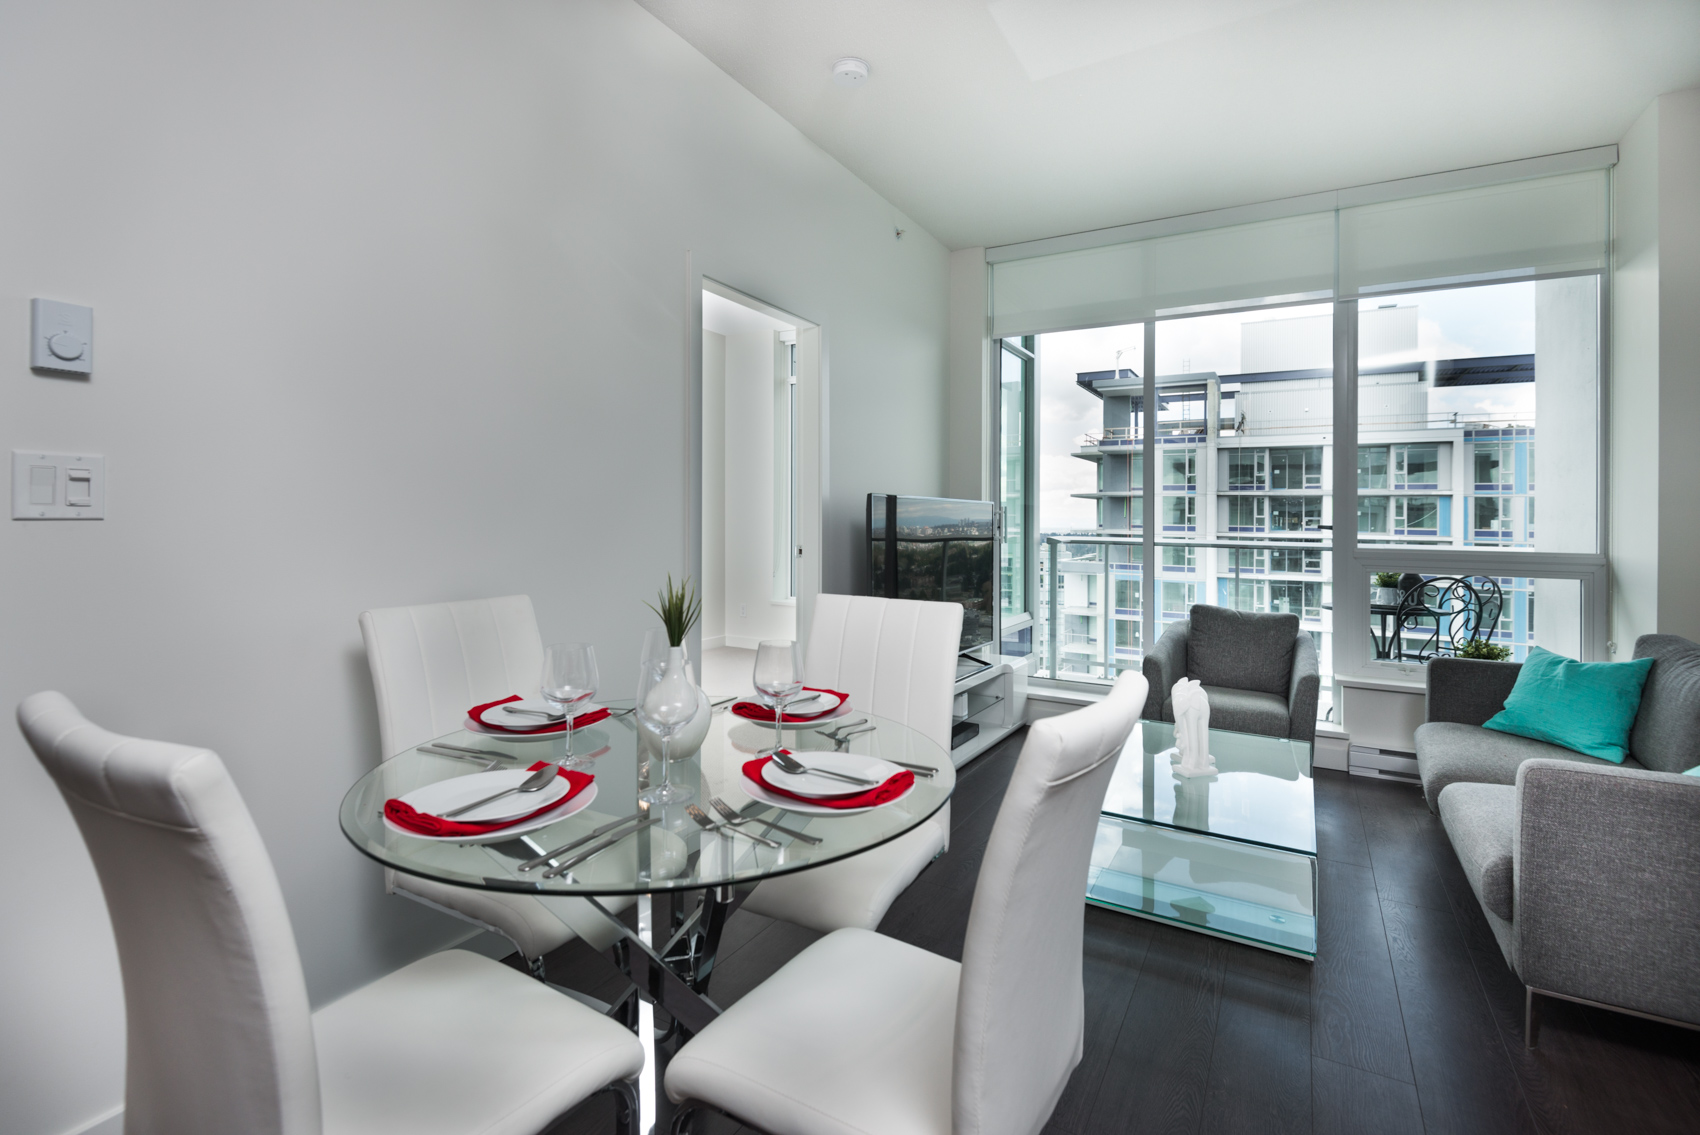 penthouse condo in whalley surrey r2164468 - penthouse condo at